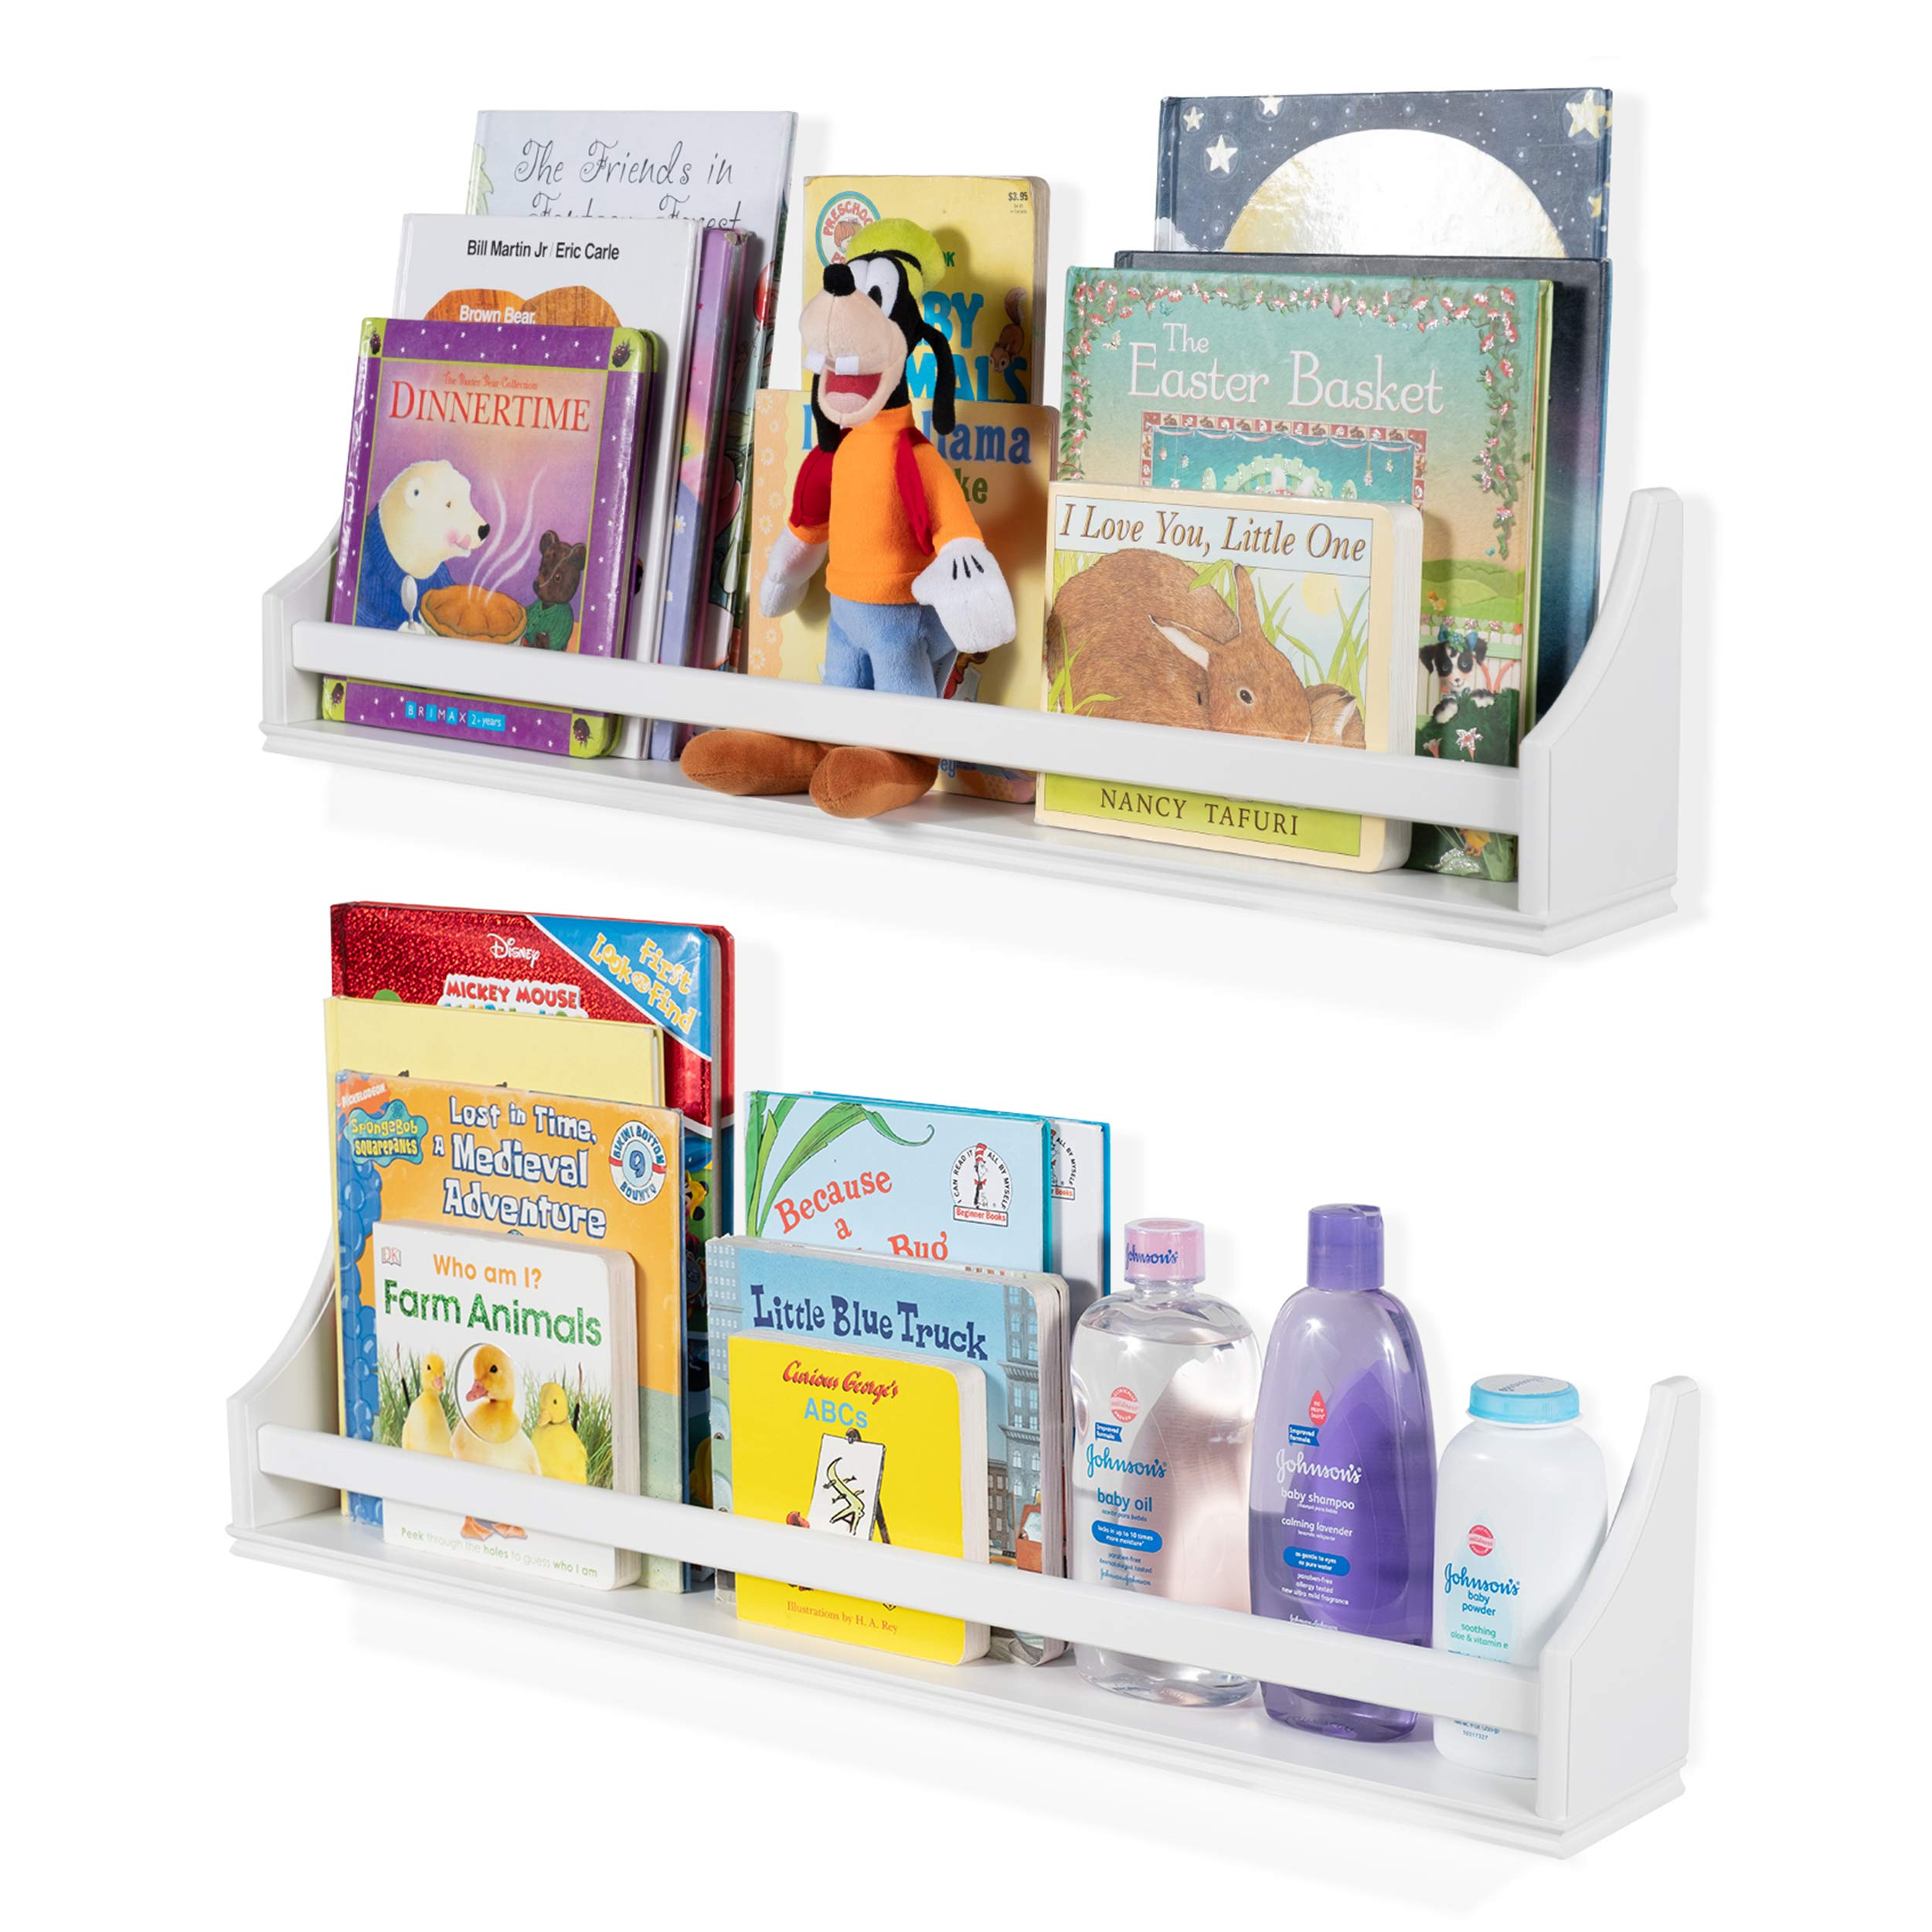 2 Set Shelf Long Crown Molding Floating Bookshelves for Baby and Kids Nursery Room Book Organizer Wall Shelves Storage Ledge Display Holder for Toys CDs Baby Monitor Frames - Ships Fully Assembled by brightmaison